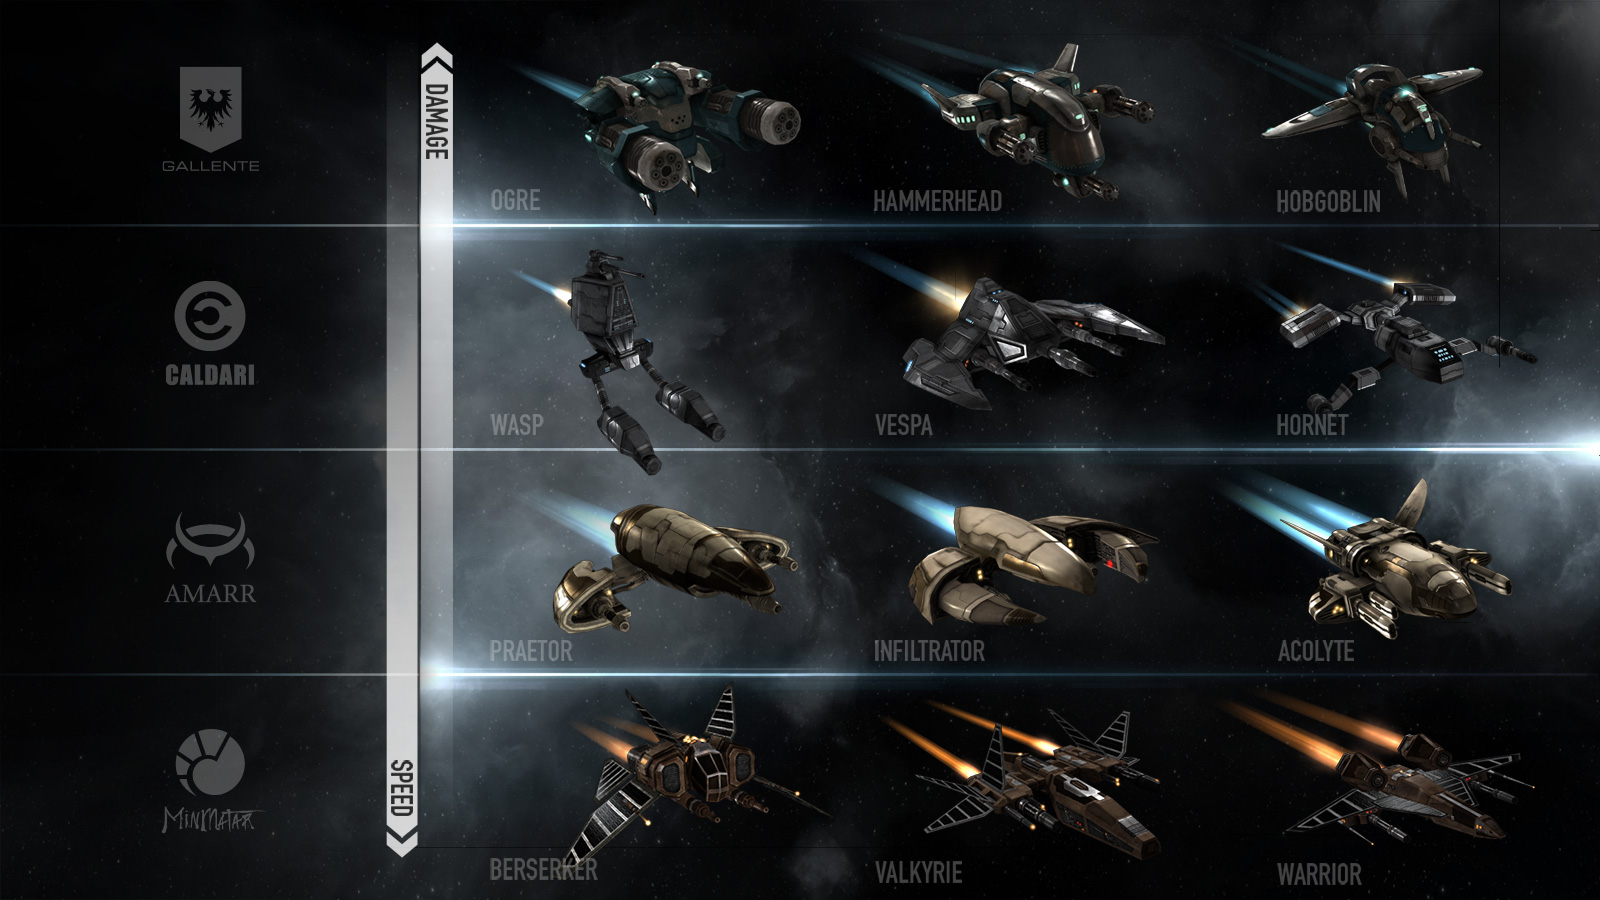 eve online drone ships with New Drone Modules And Skill Updates on Eve Online Rubicon Features New Ships Deployable Structures And More as well New Drone Modules And Skill Updates in addition Vanguard Variants By Gurmukh Bhasin likewise Reworking Capital Ships And Thus It Begins further 5 Spaceships  ing Soontm To A Sci Fi Universe Near You.